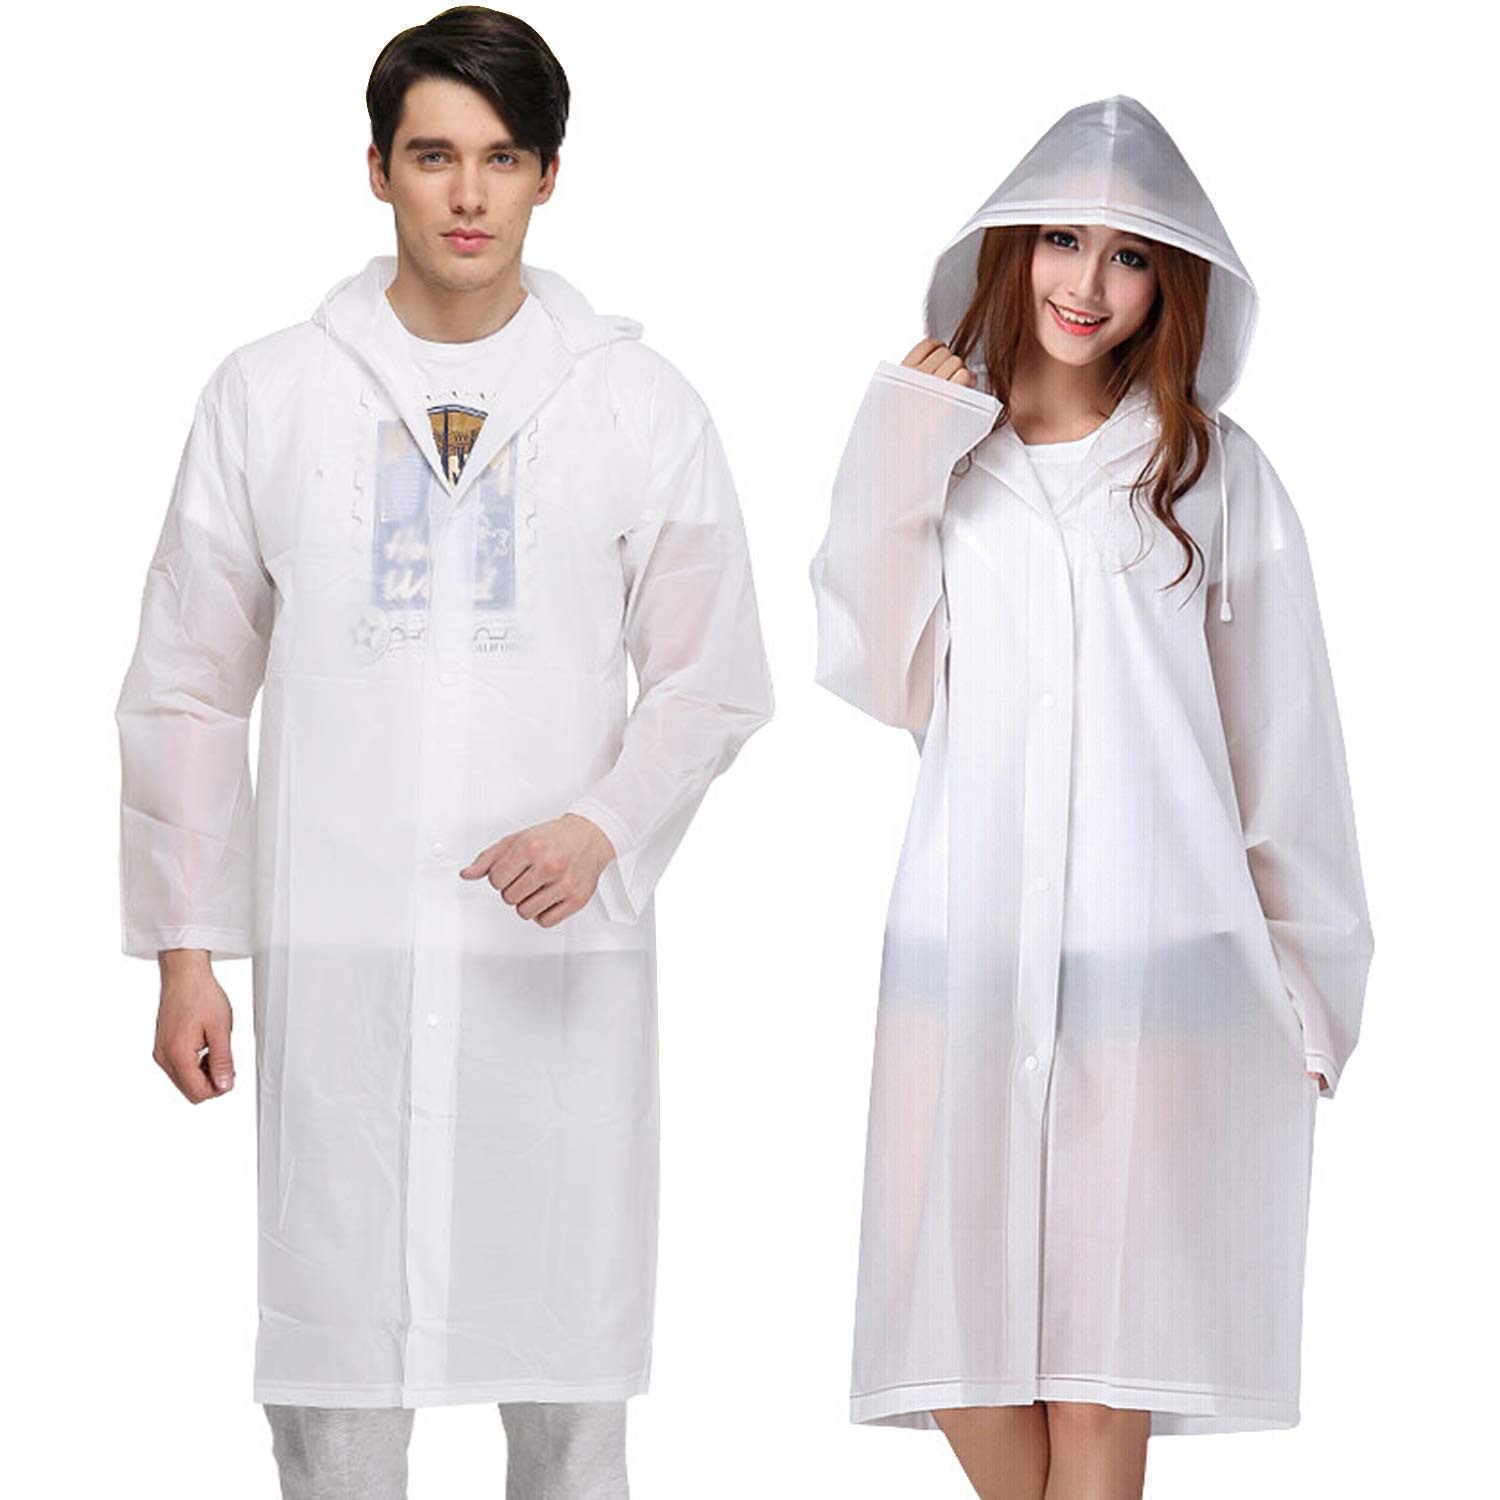 KKTICK Rain Poncho Reusable, 2 Pack Adult Raincoat with Hoods and Sleeves, Thicken Clear Ponchos for Men Women Teens, 45.2 x 24.8 45.2 x 24.8